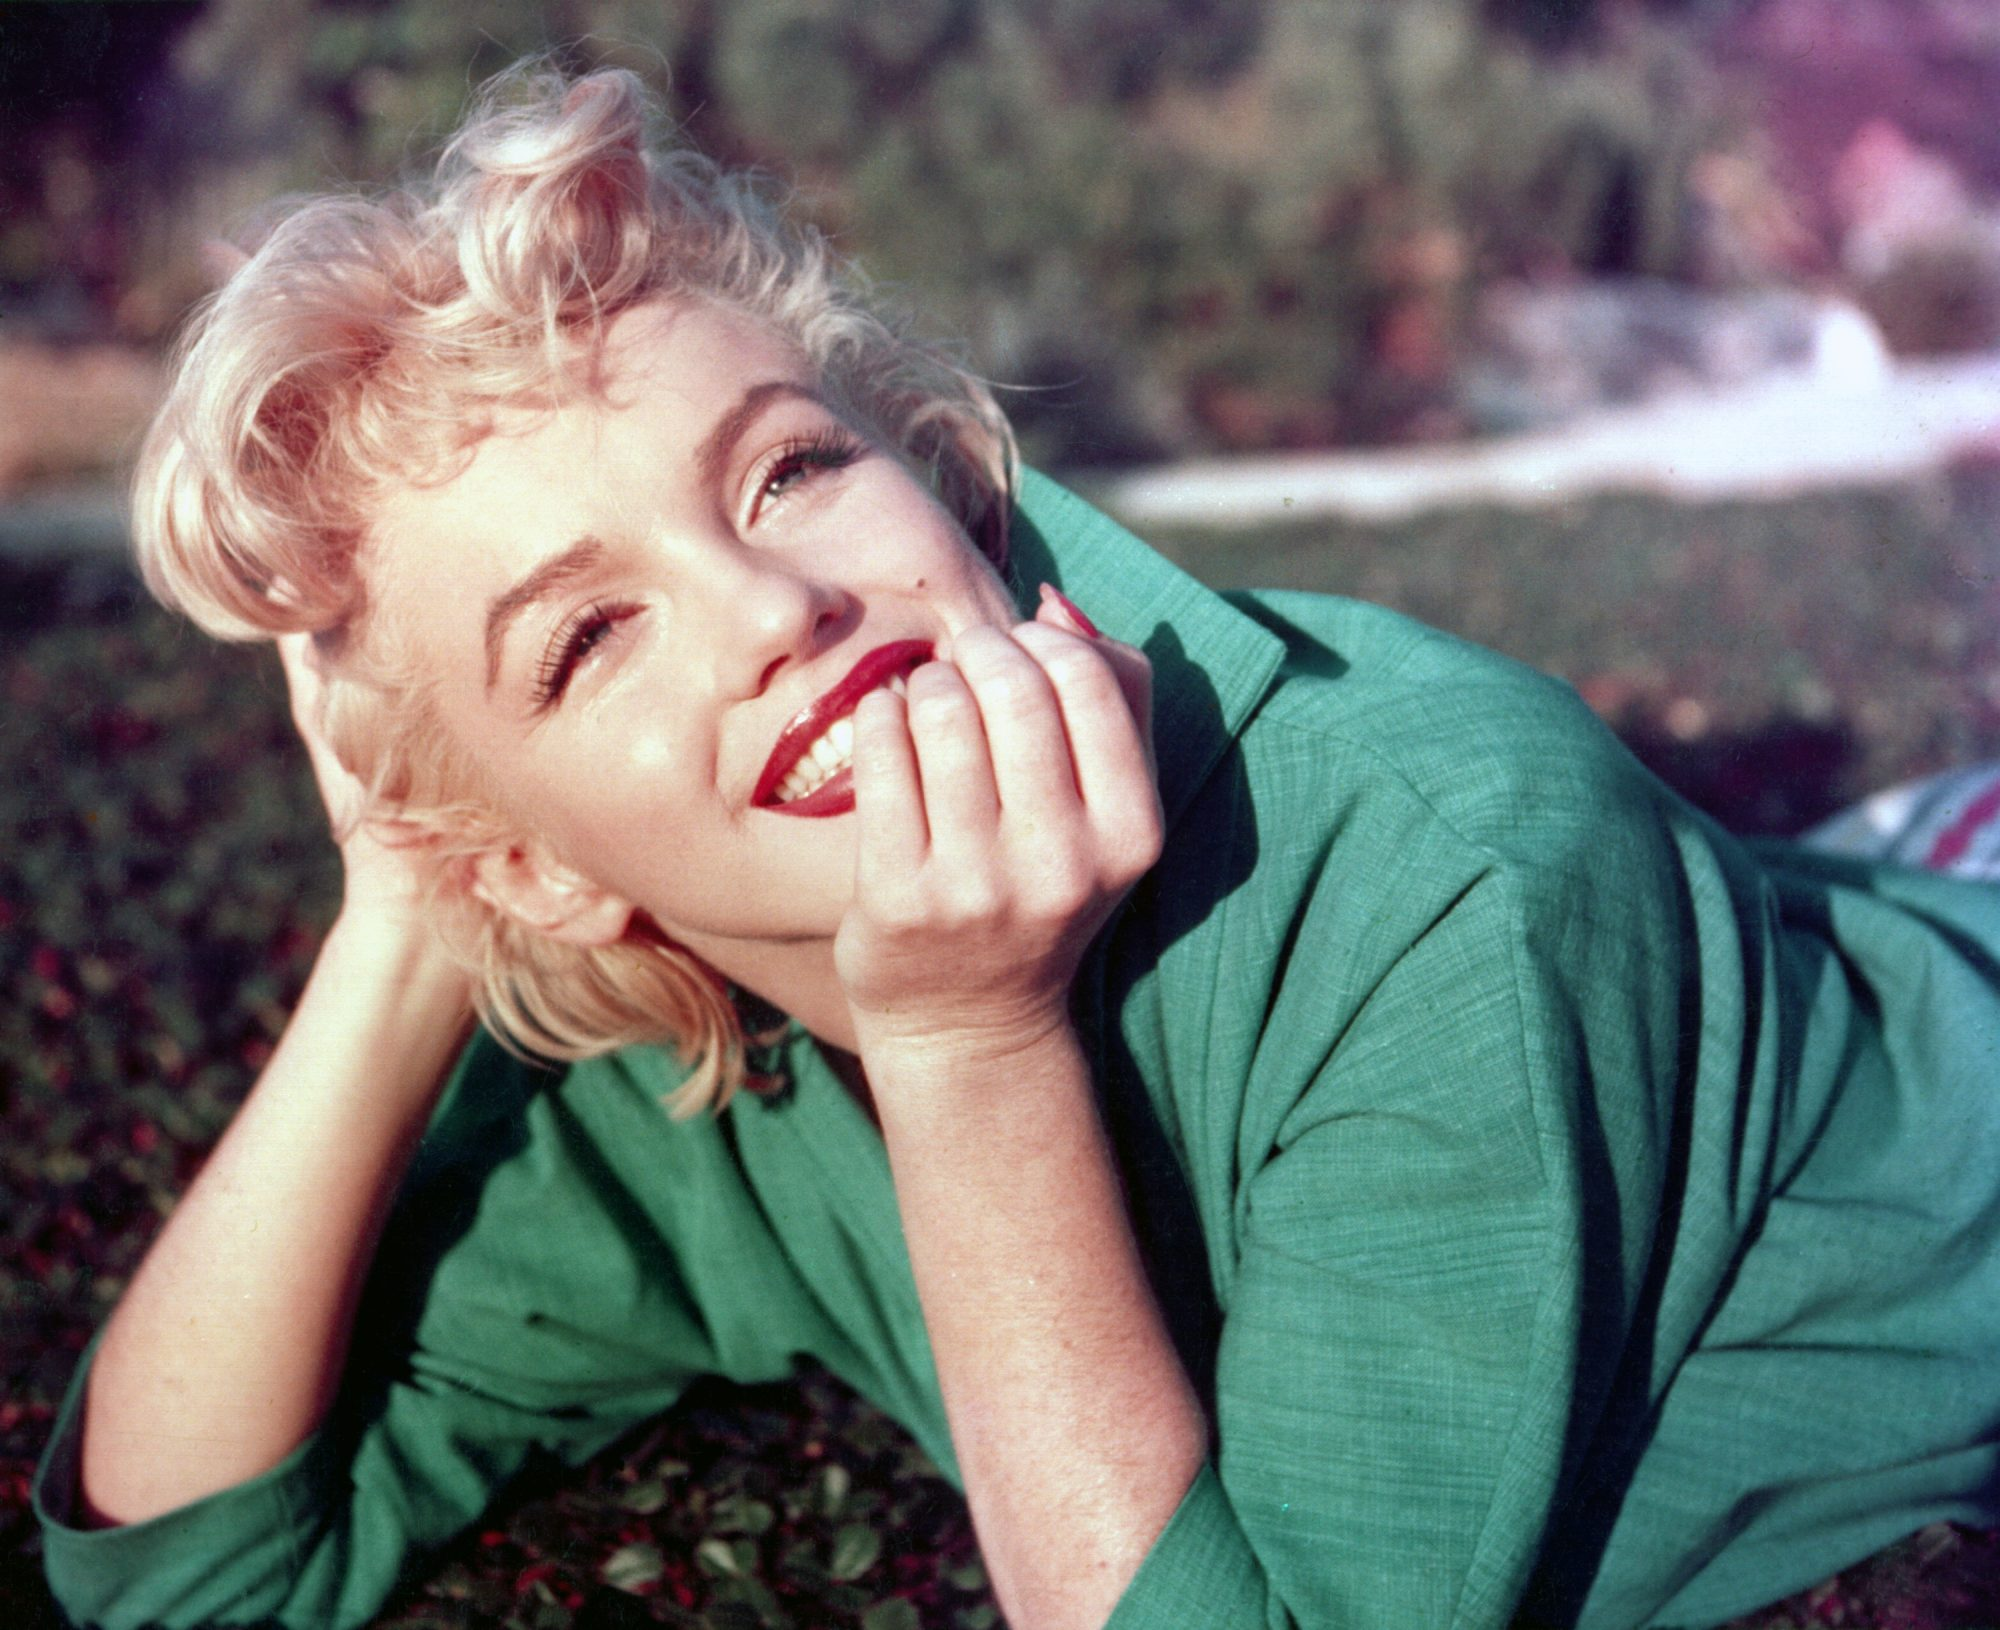 Marilyn Monroe in Green Shirt with Red Lipstick